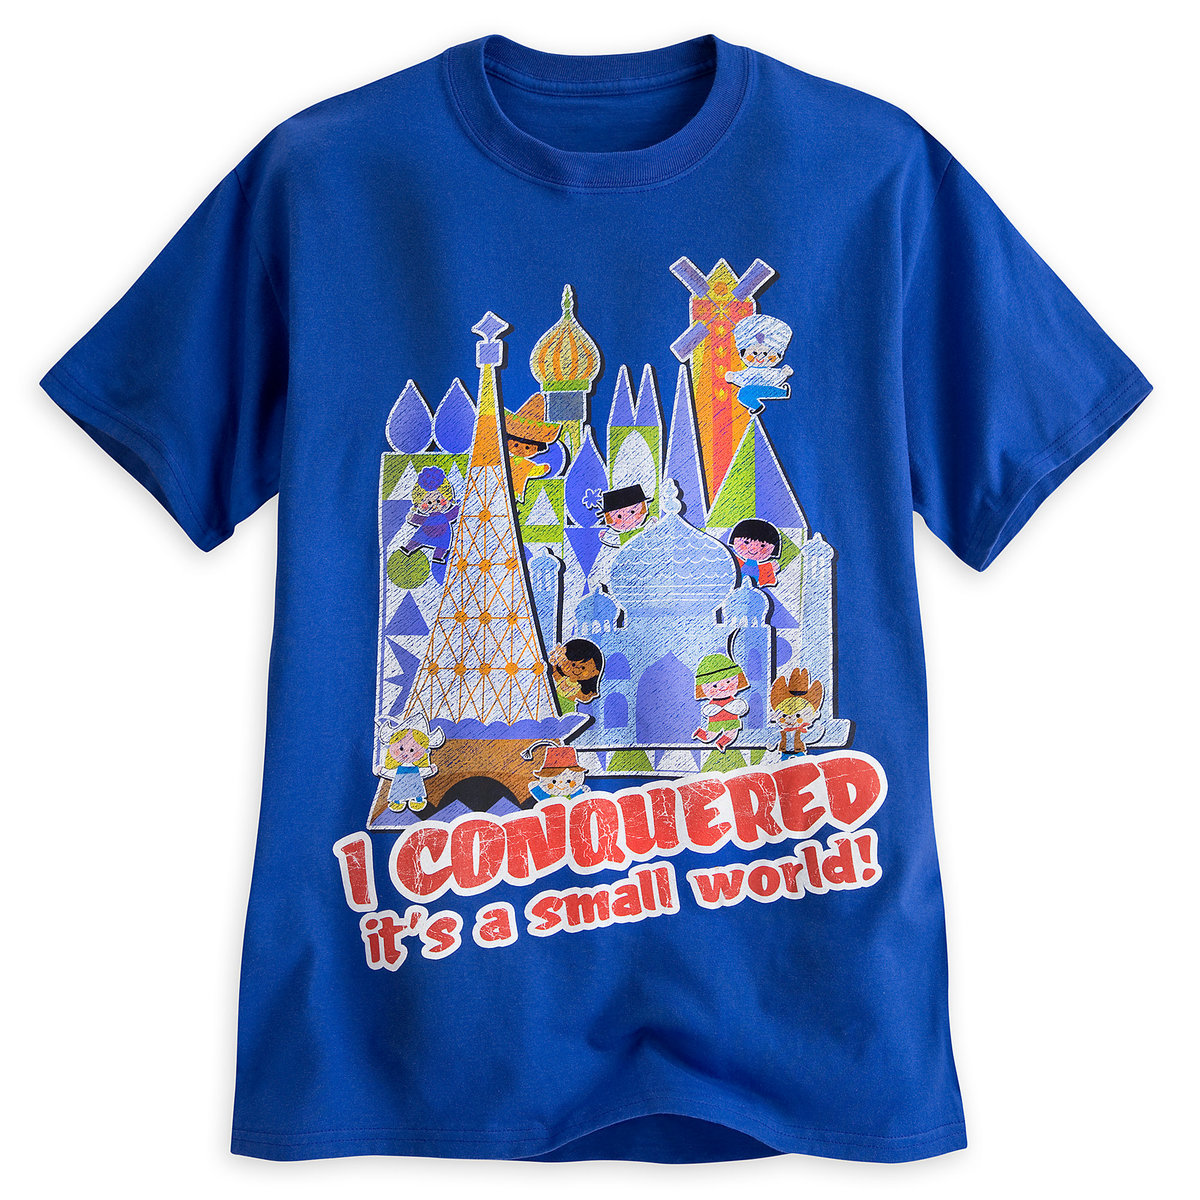 4b9e1e43 Product Image of ''it's a small world'' Tee for Adults # 1